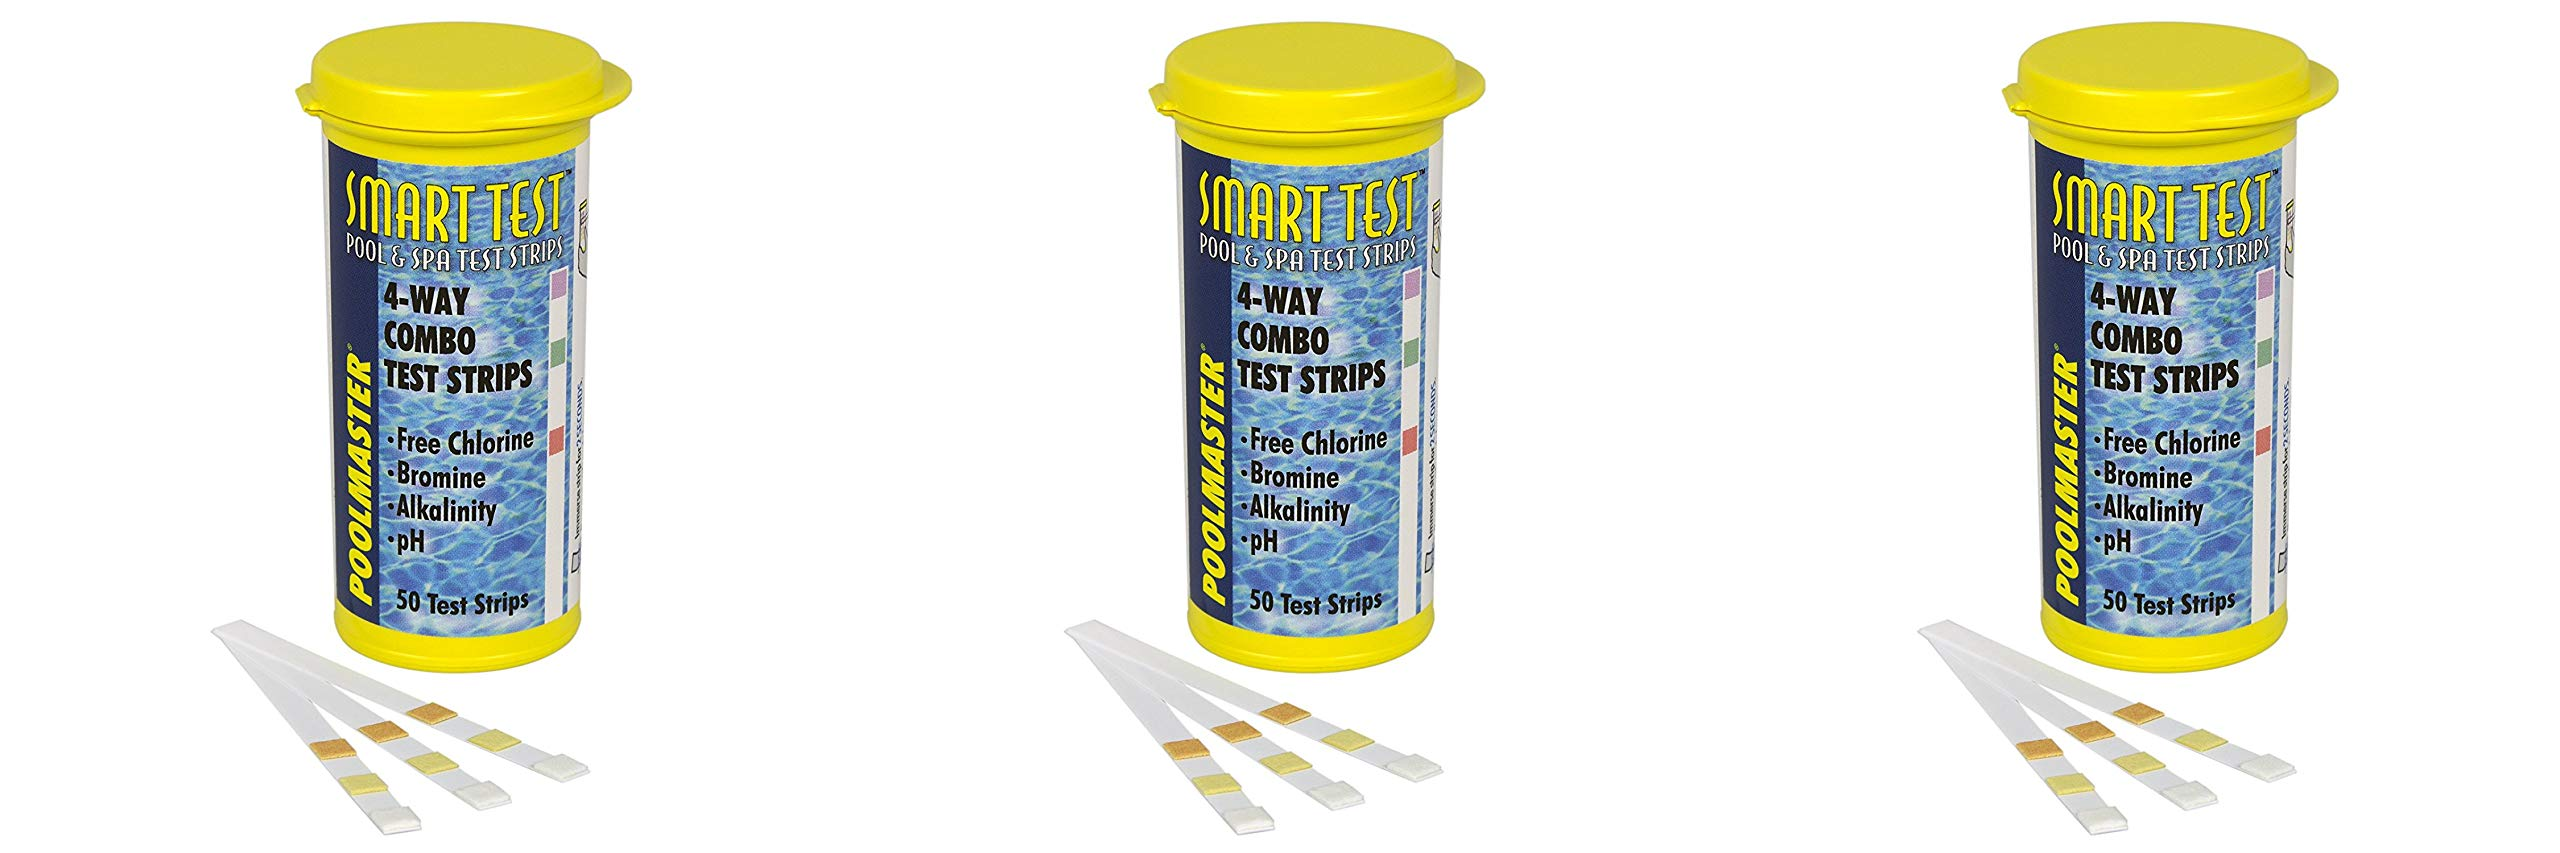 Poolmaster 22211 Smart Test 4-Way Swimming Pool and Spa Water Chemistry Test Strips, 50 Count - Pack 3 by Poolmaster